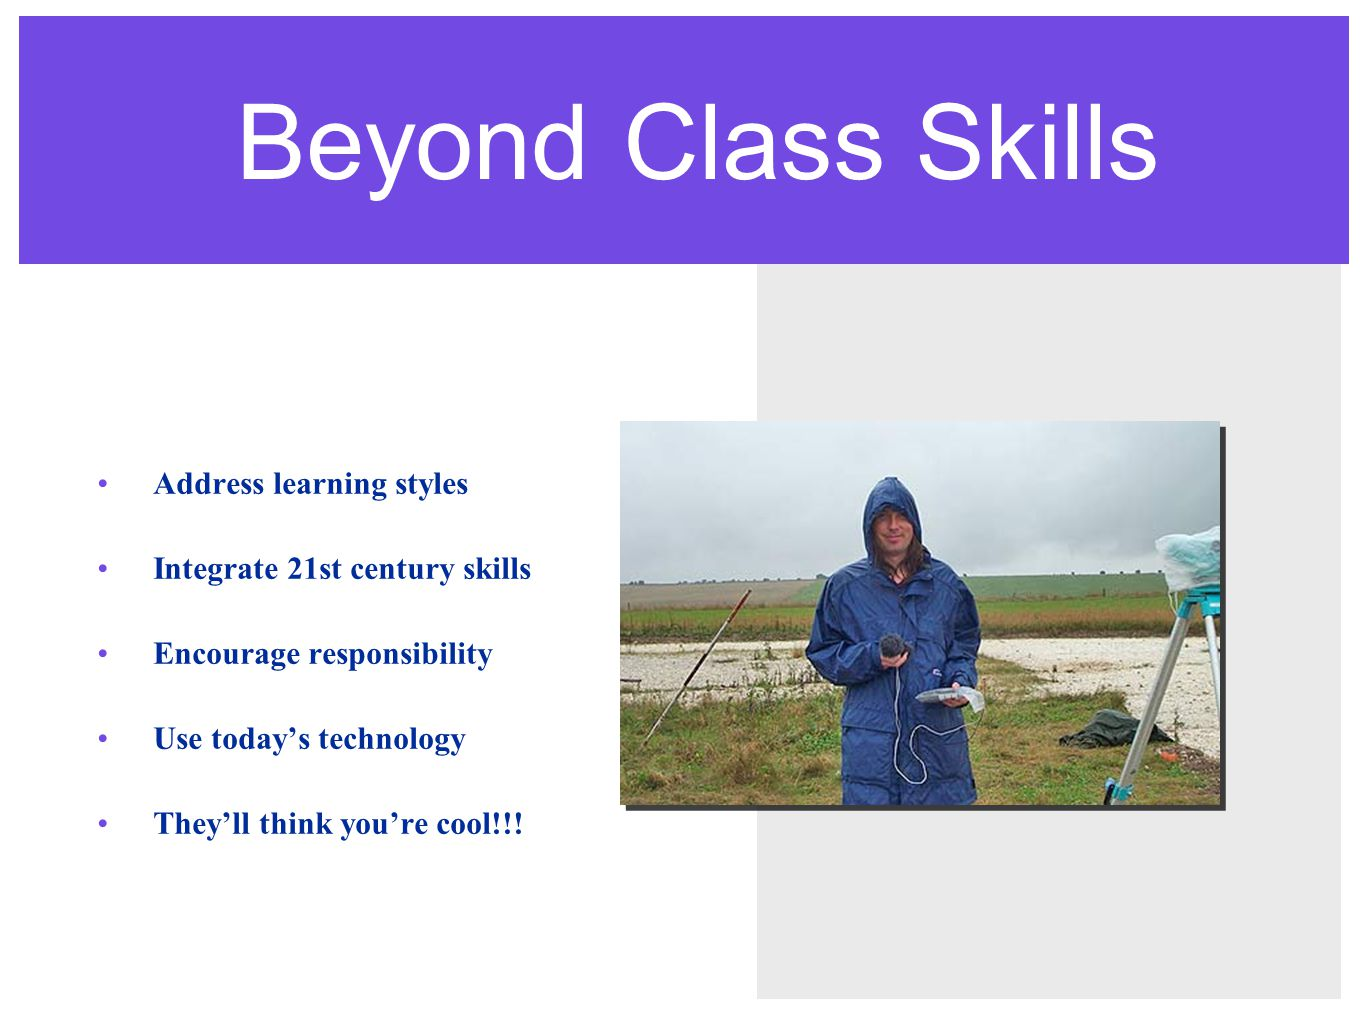 Beyond Class Skills Address learning styles Integrate 21st century skills Encourage responsibility Use today's technology They'll think you're cool!!!